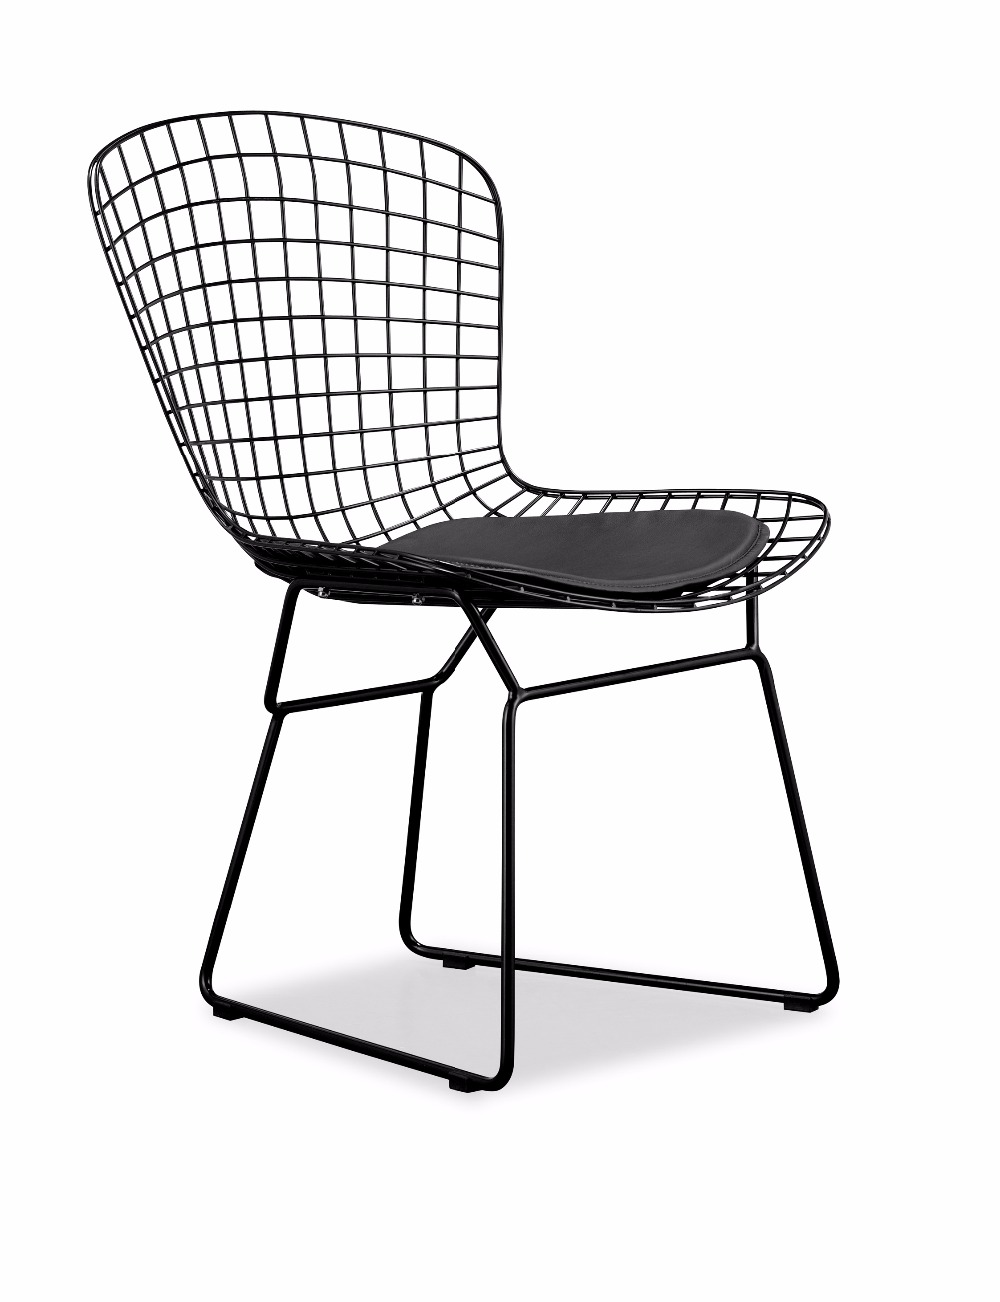 black wire chair stand meaning white powder coating harry bertoia modern classic padded steel side colored metal cafe in dining chairs from